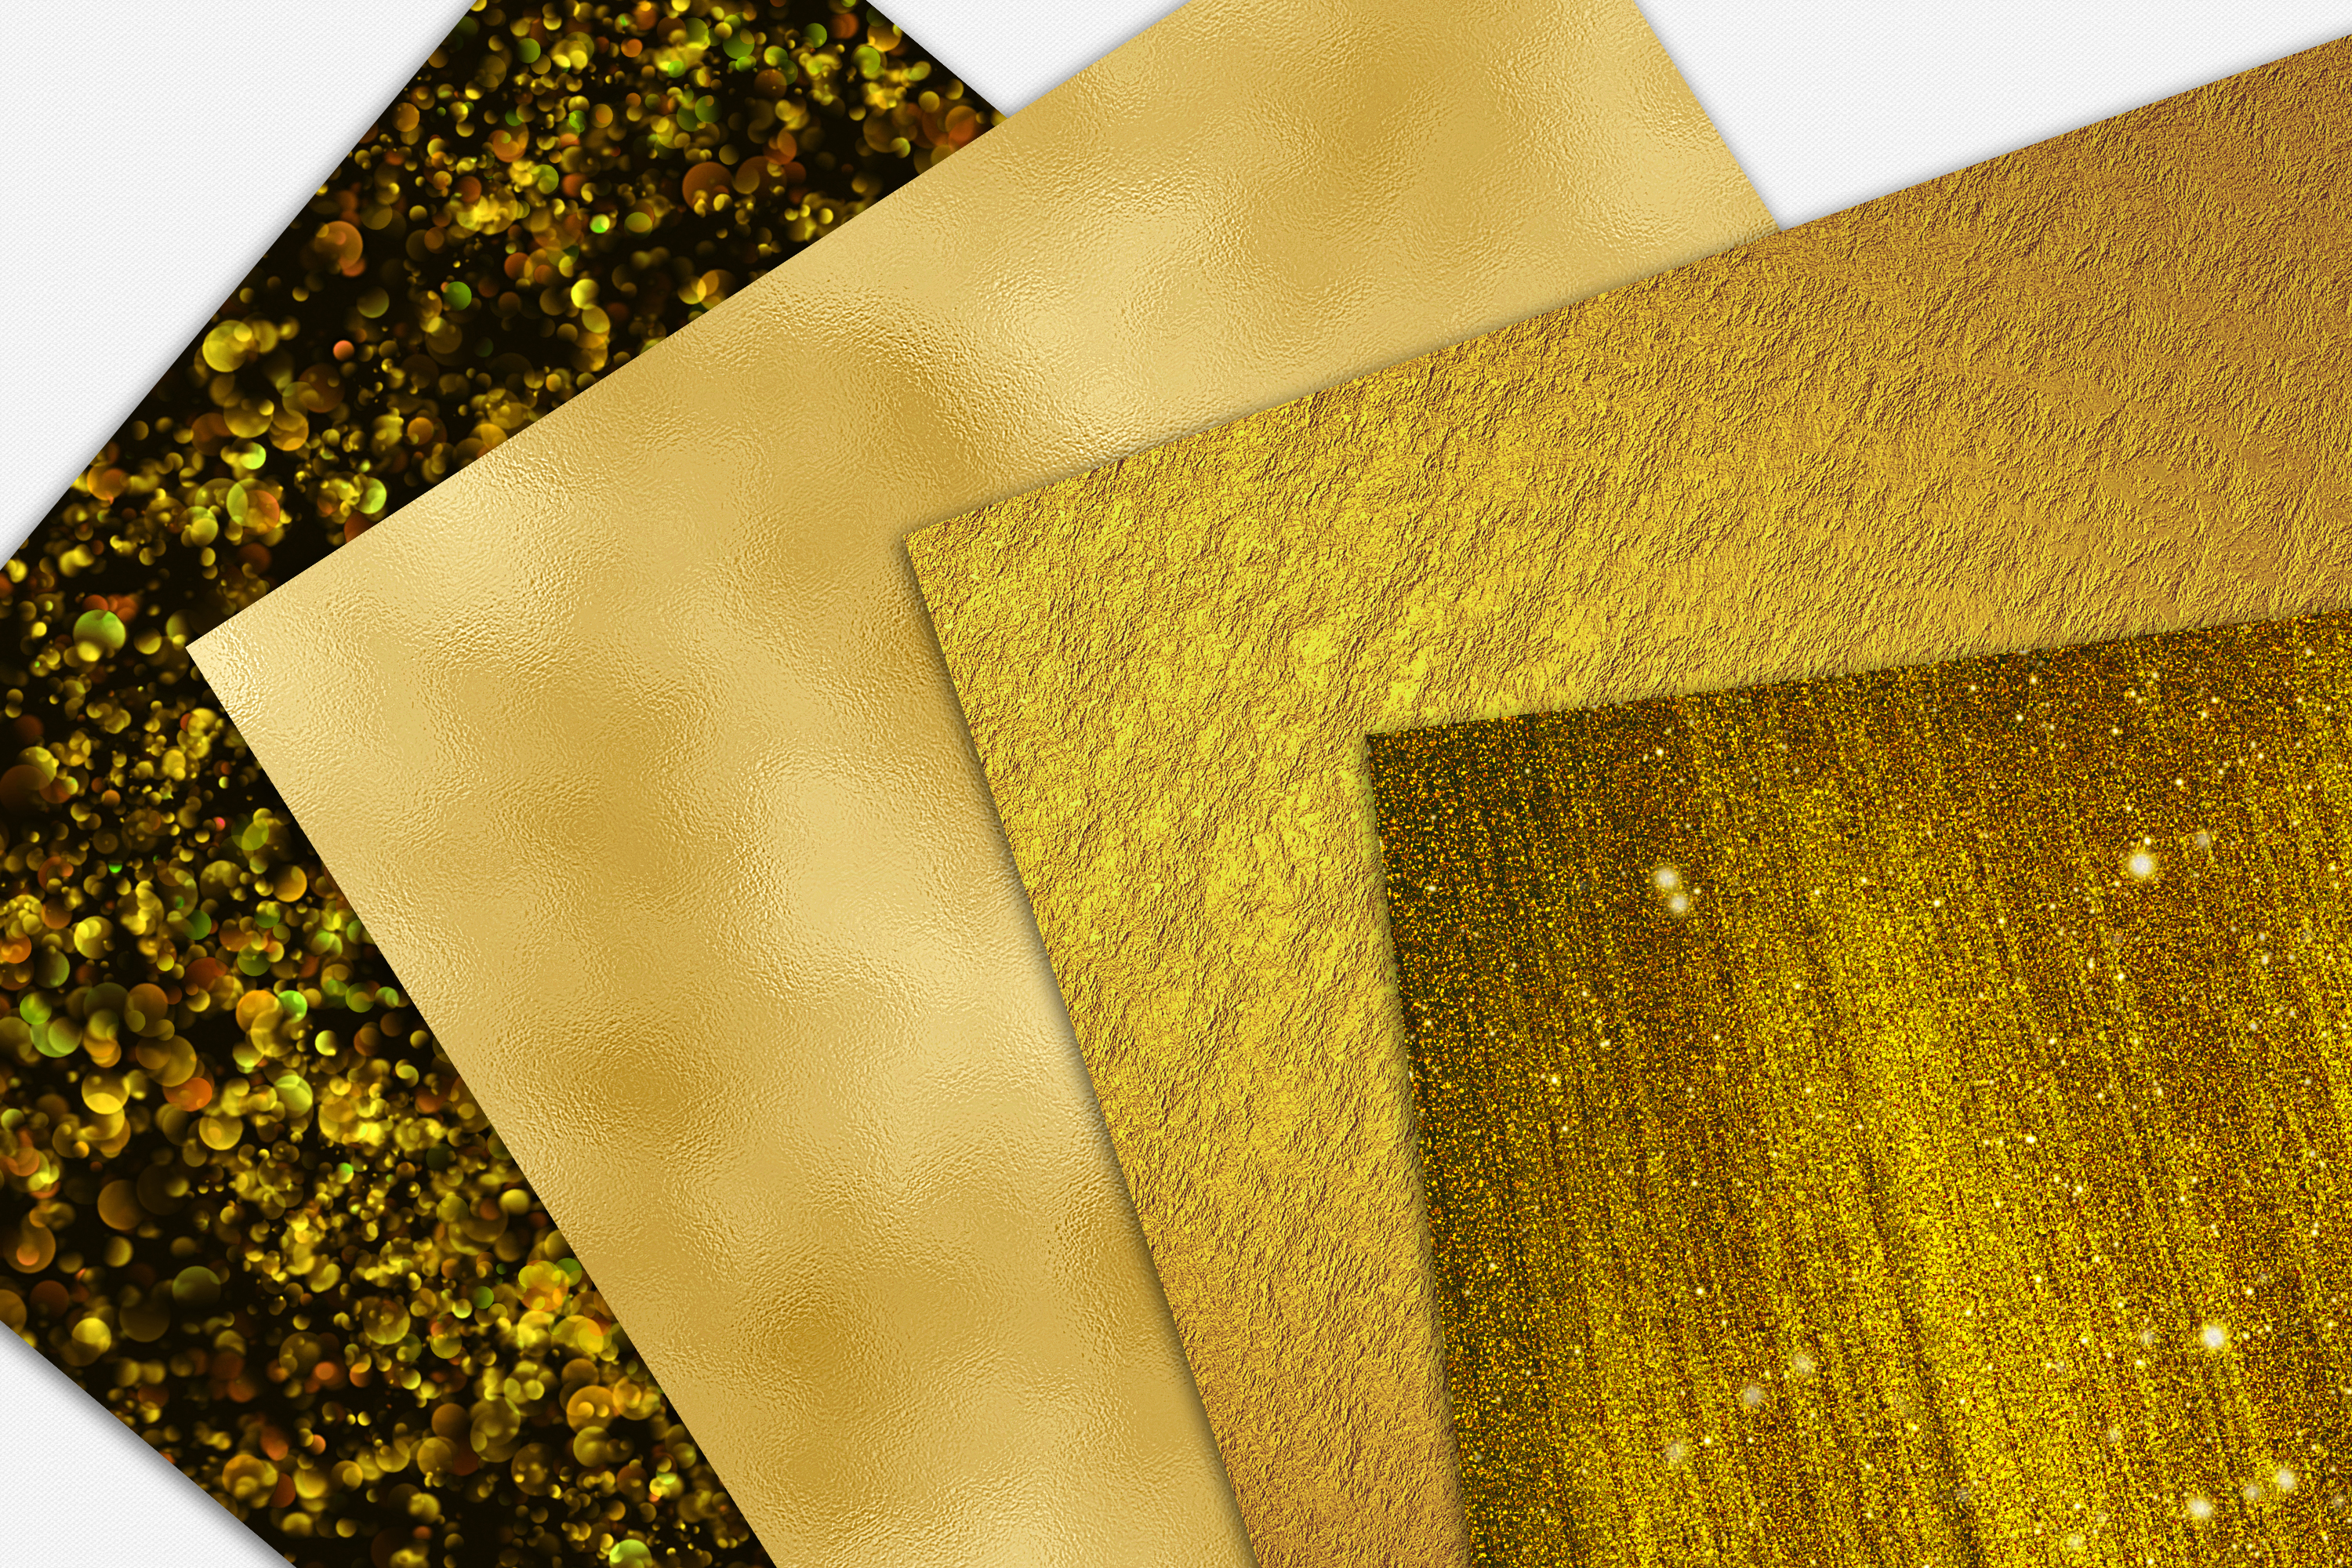 Gold Foil and Glitter Textures - Metallic Digital Papers example image 3